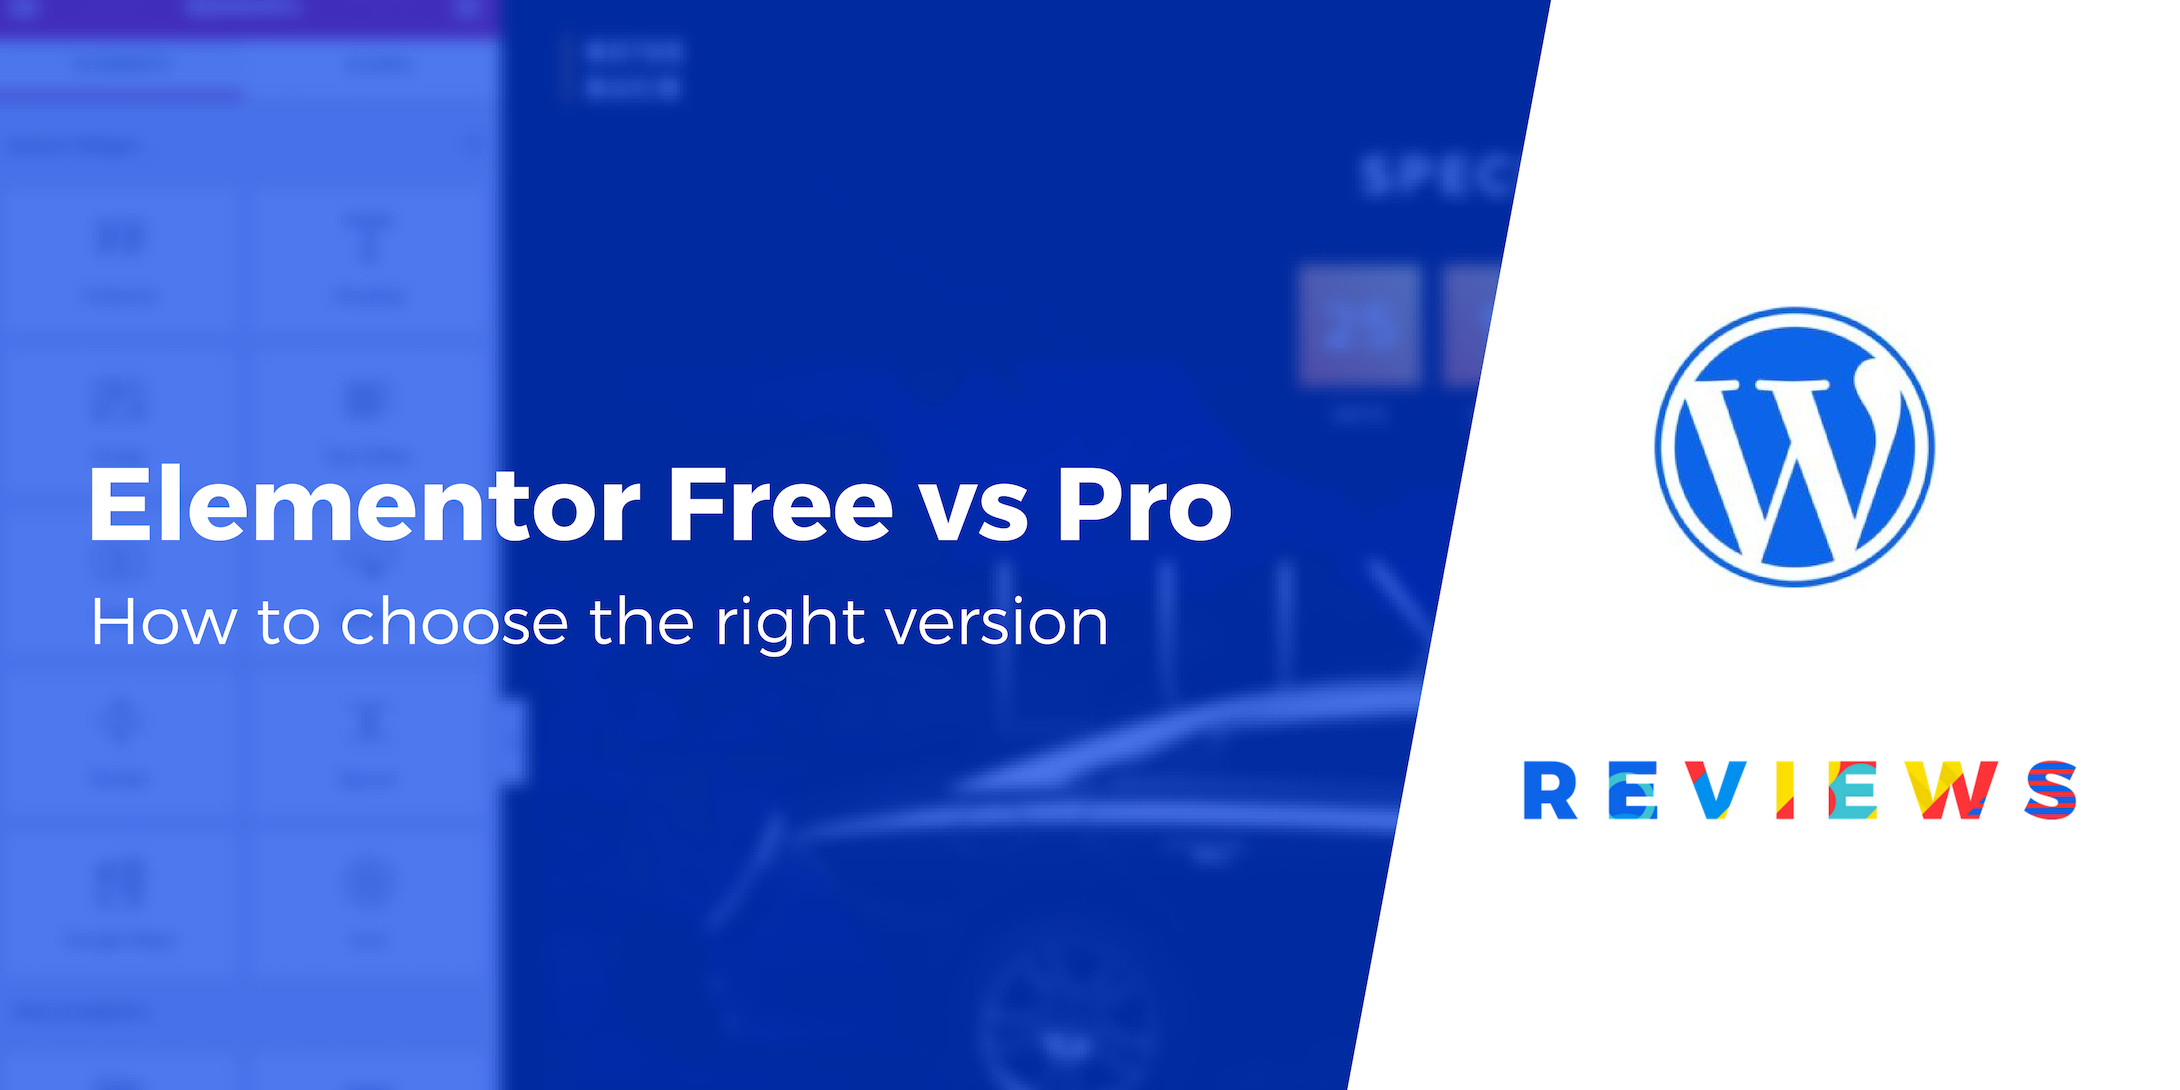 Elementor Free vs Pro Differences: Here's How to Choose the Right One